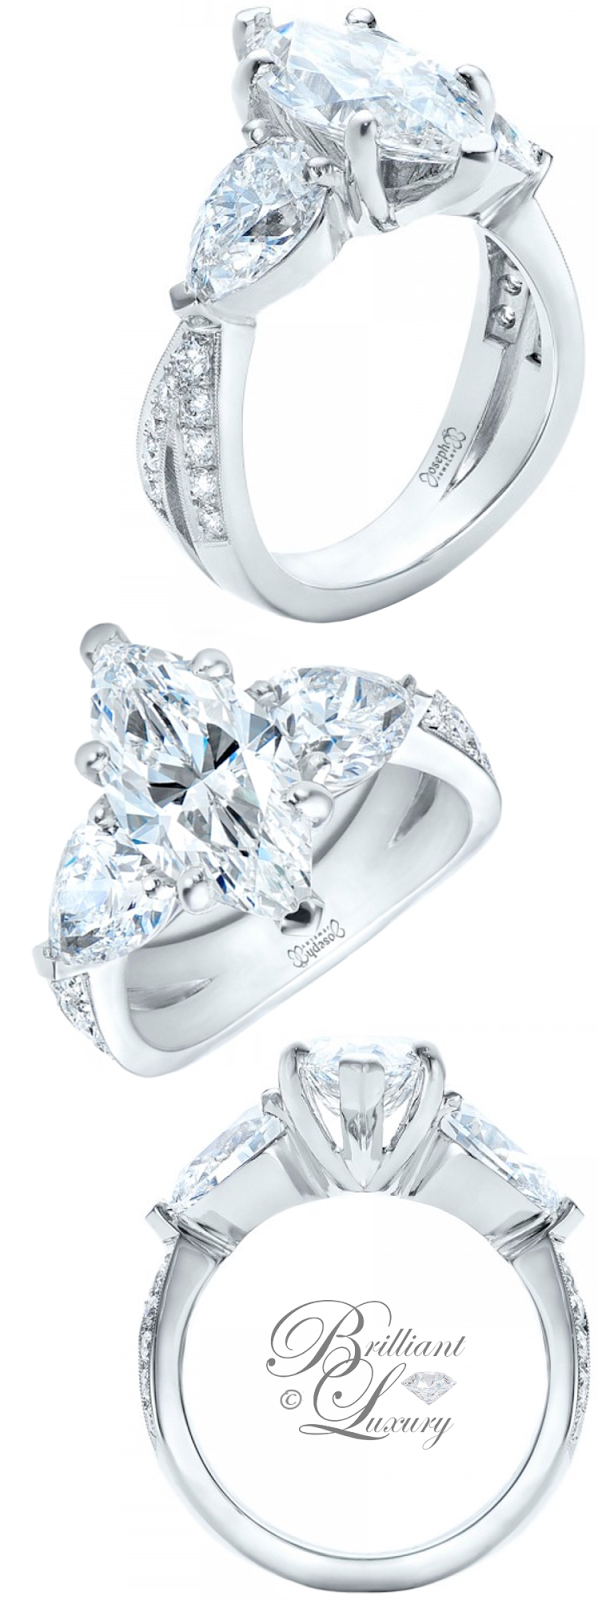 Brilliant Luxury ♦ Joseph Jewelry Custom Marquise Diamond Engagement Ring